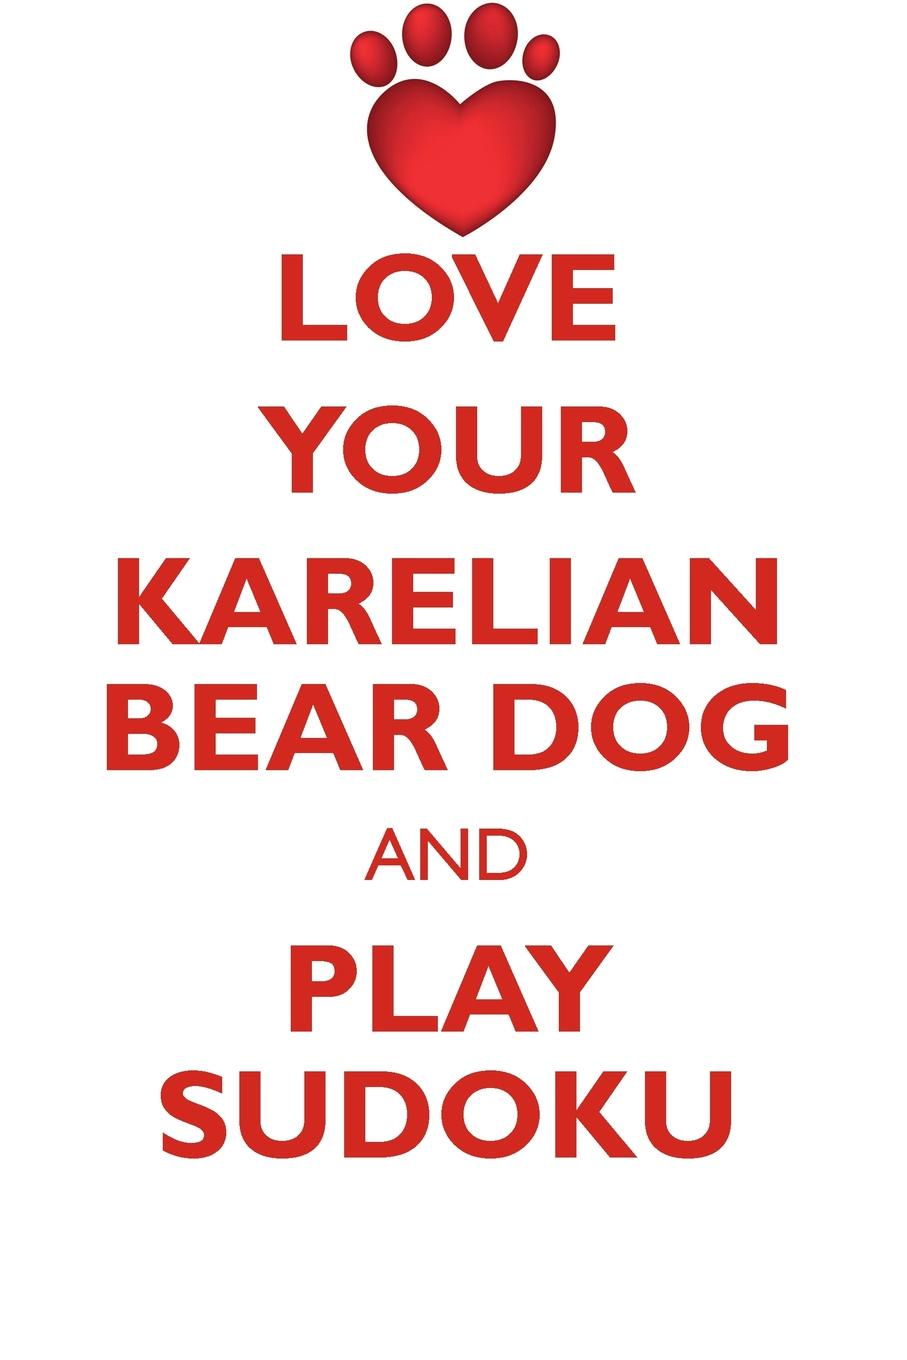 Loving Puzzles LOVE YOUR KARELIAN BEAR DOG AND PLAY SUDOKU KARELIAN BEAR DOG SUDOKU LEVEL 1 of 15